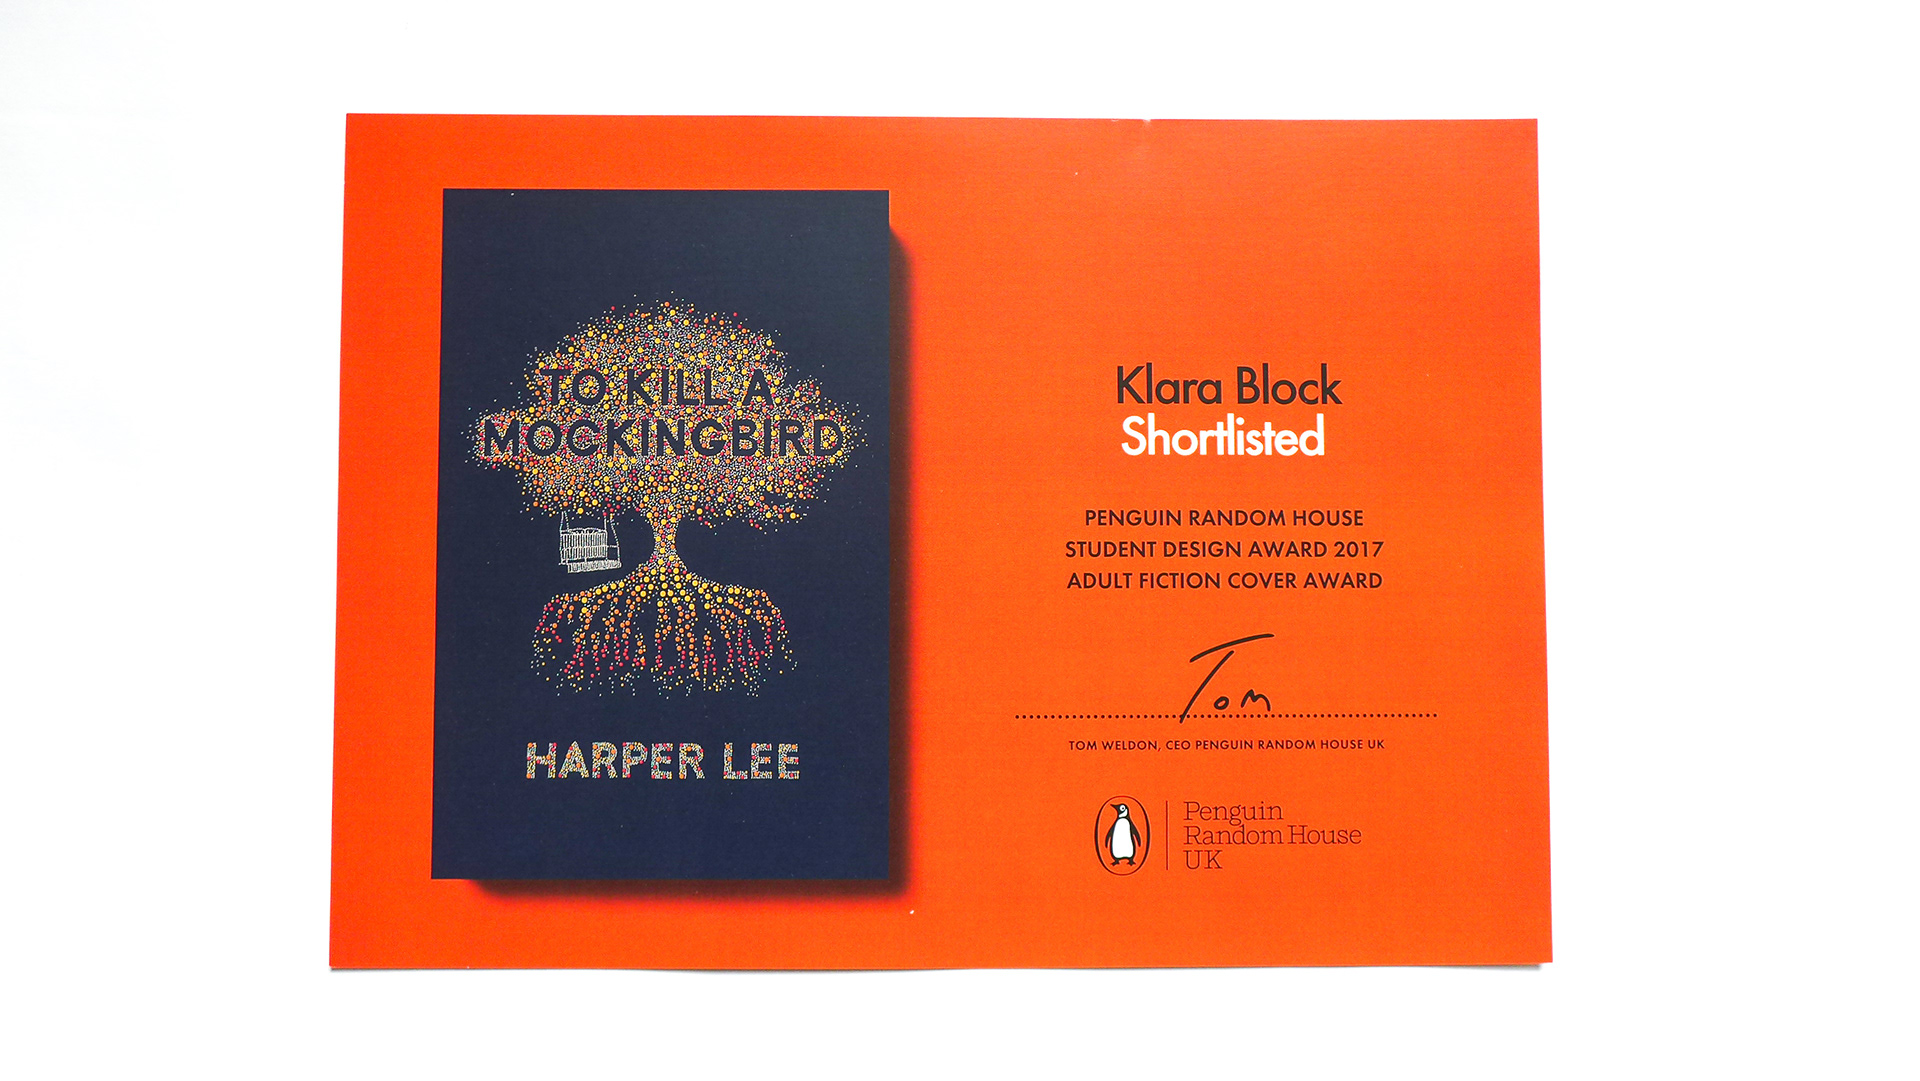 Penguin Book Cover Uk : Klara block penguin book cover design